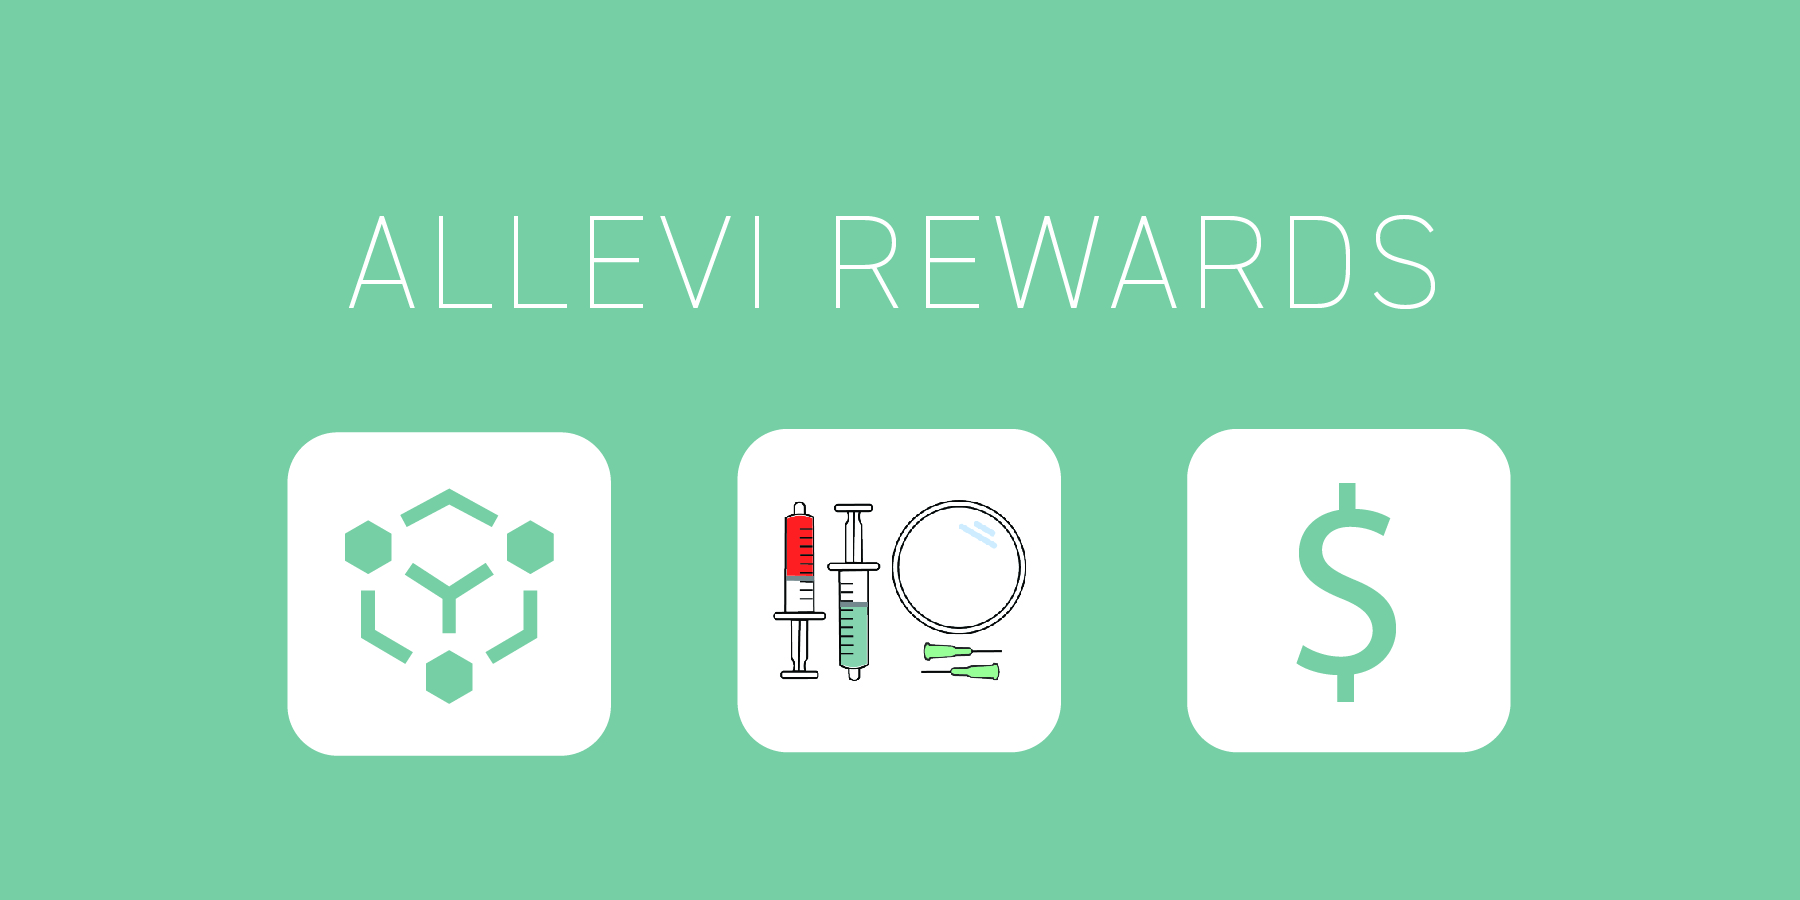 Allevi rewards program